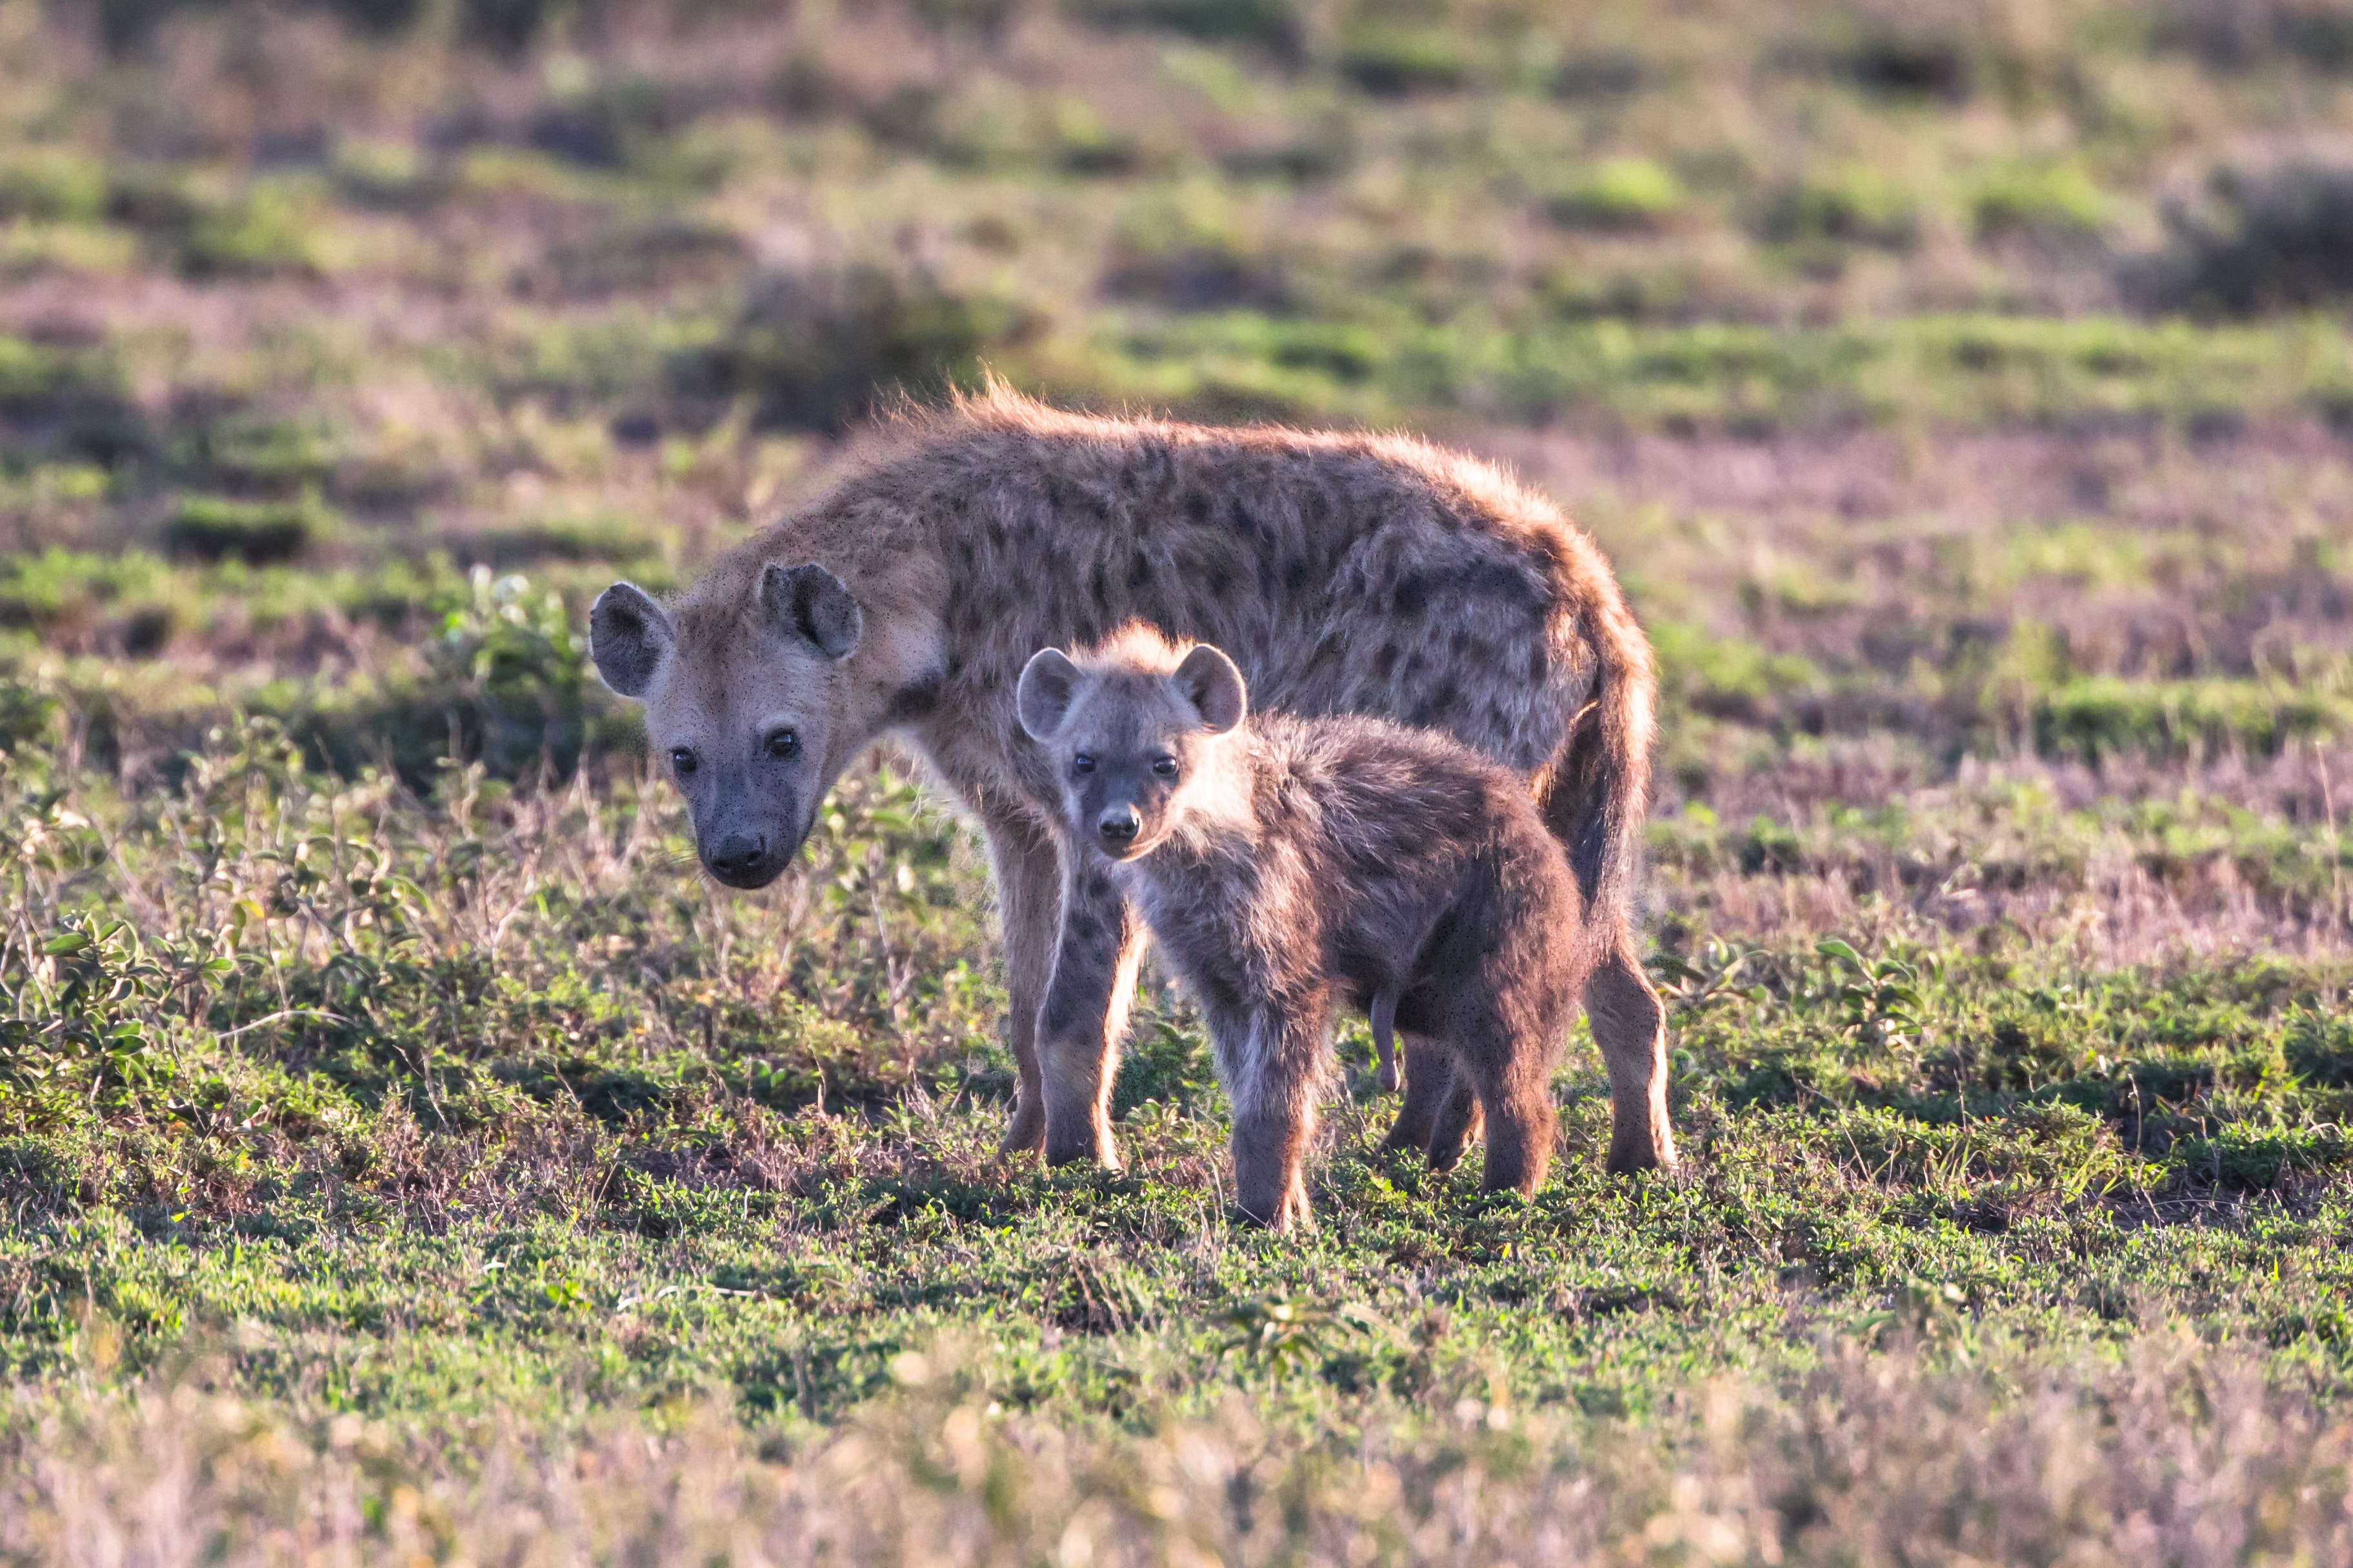 Image of: Spotted Hyena Wildlife Photography Of Two Wallabies Unsplash Hyenas Can Be Cute Too Photo By Jean Wimmerlin jwimmerli On Unsplash